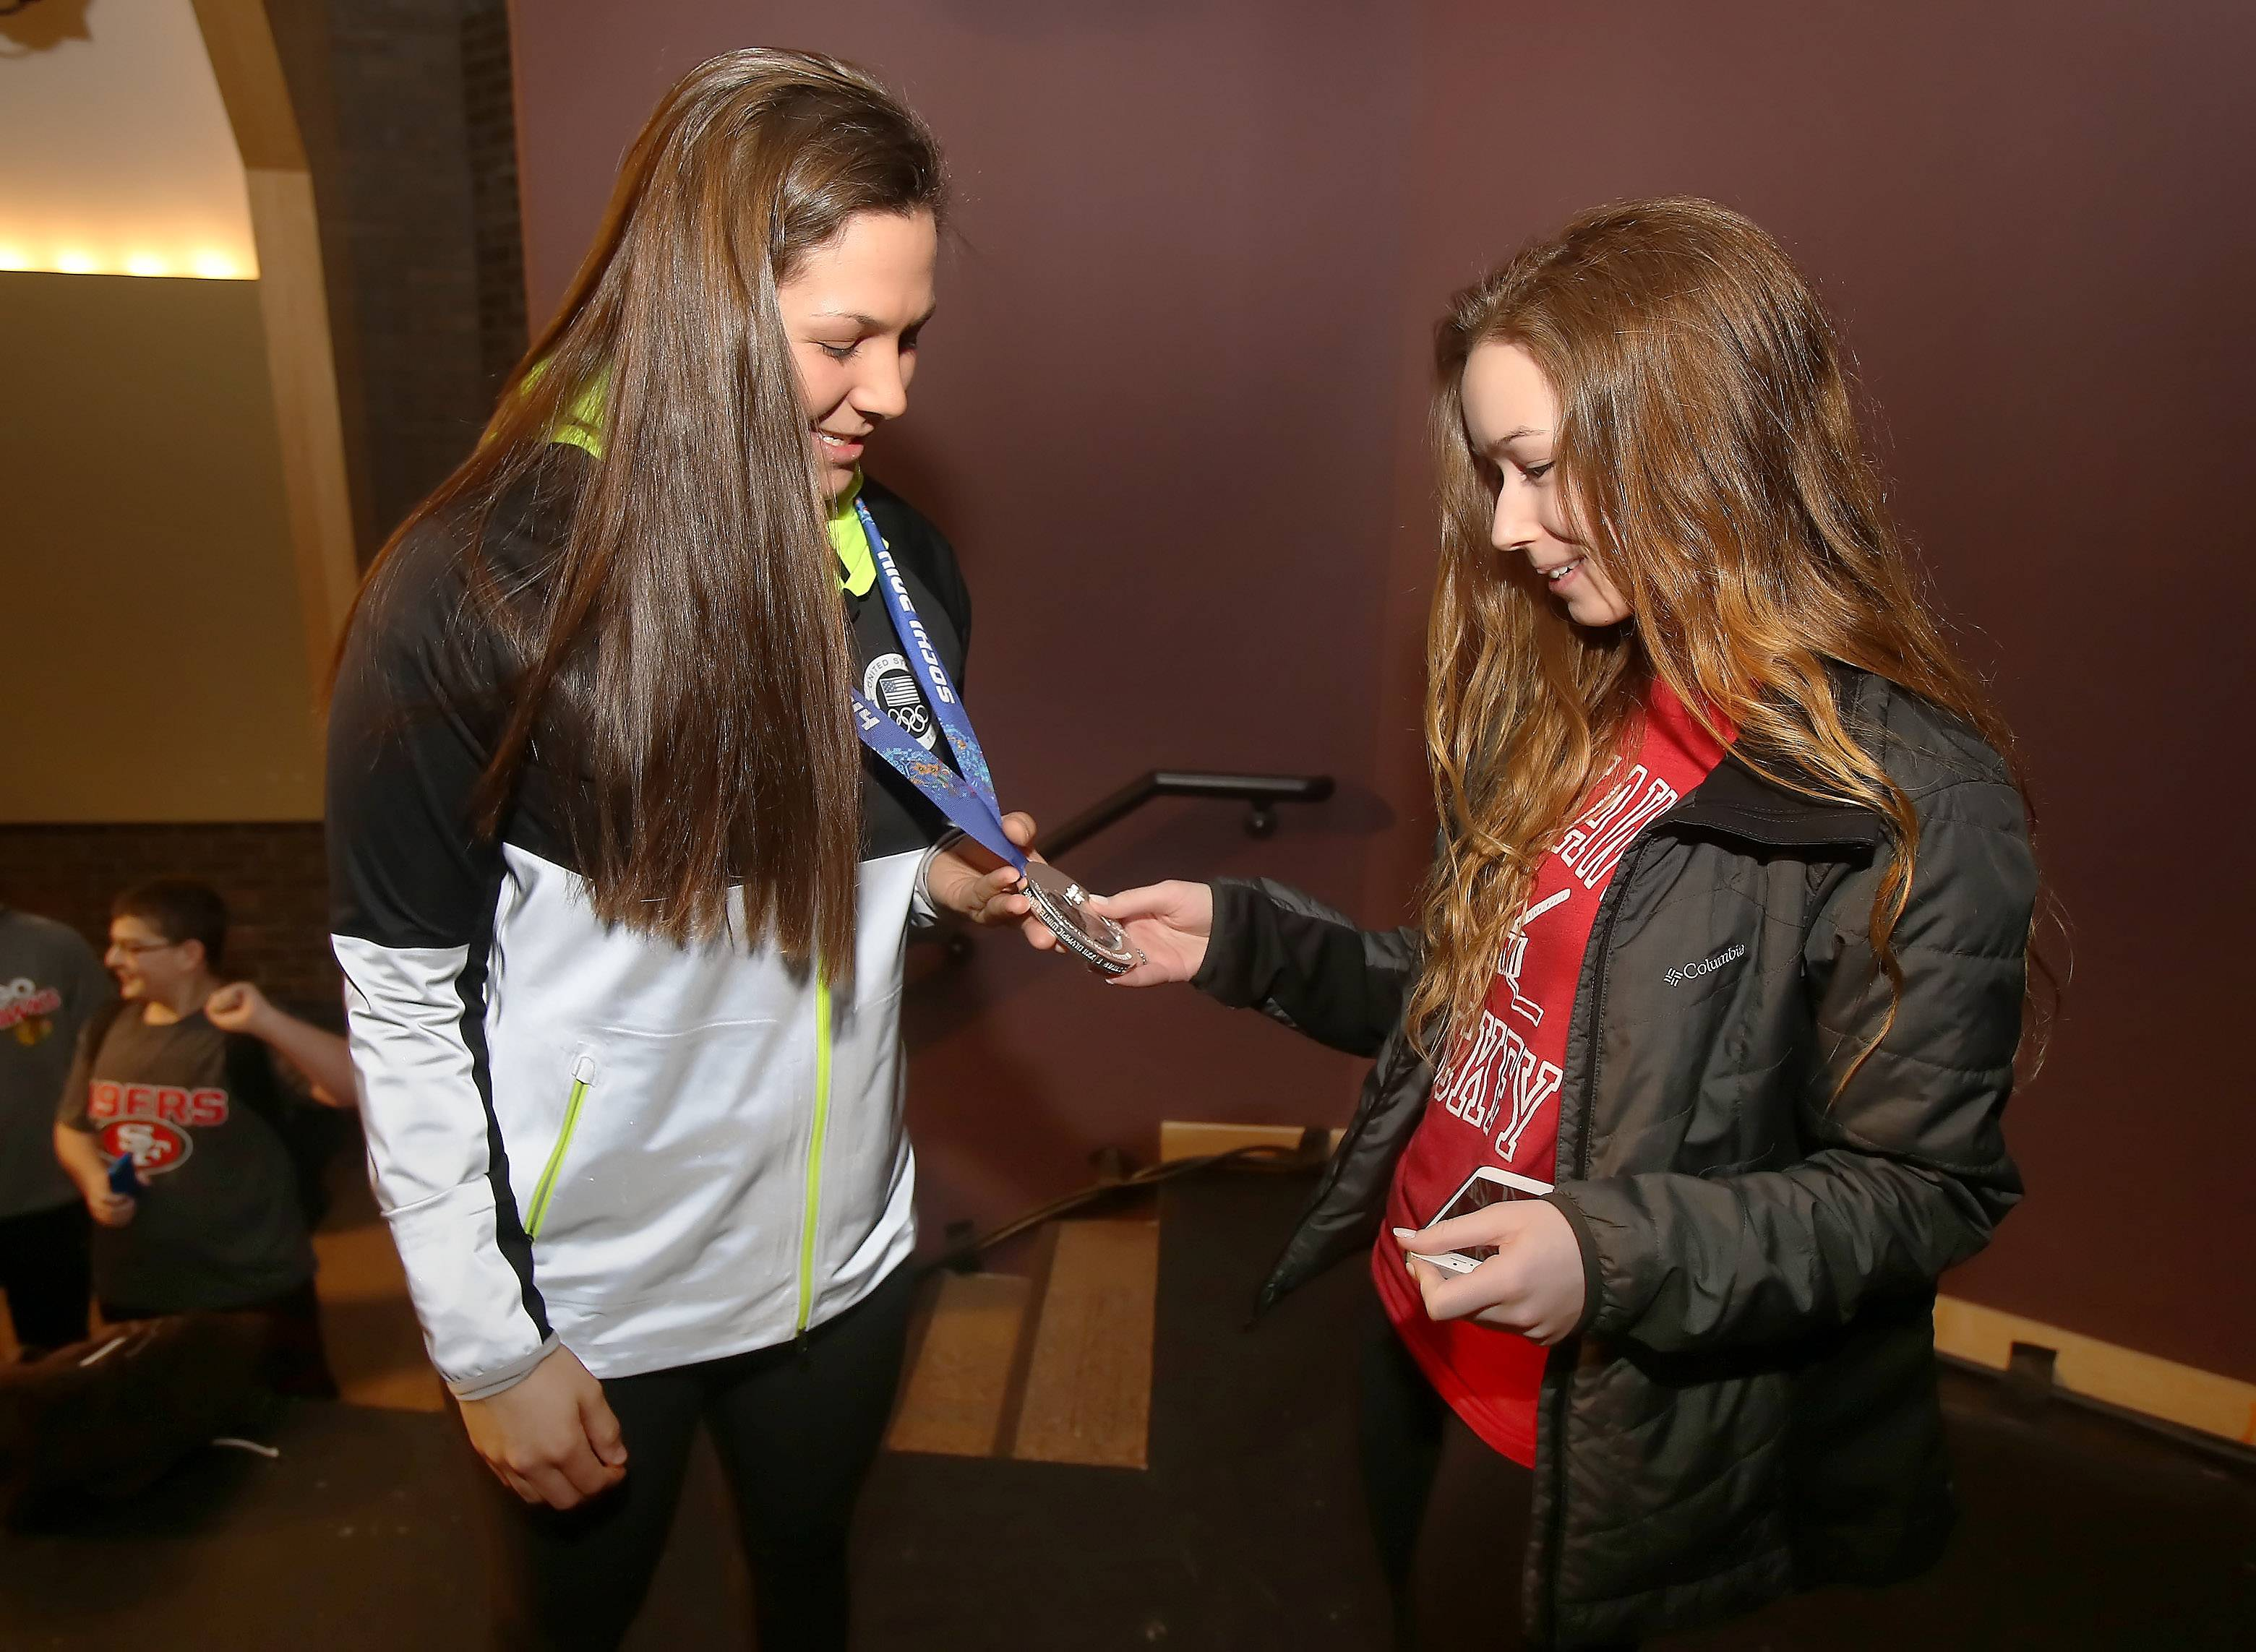 Olympian Megan Bozek, left, shows her silver medal to senior Lora Khalfin, as Bozek met with students and teachers Wednesday at Stevenson High School in Lincolnshire. The Stevenson graduate won the silver as a member of the U.S. women's ice hockey team in the 2014 Sochi Winter Olympics.